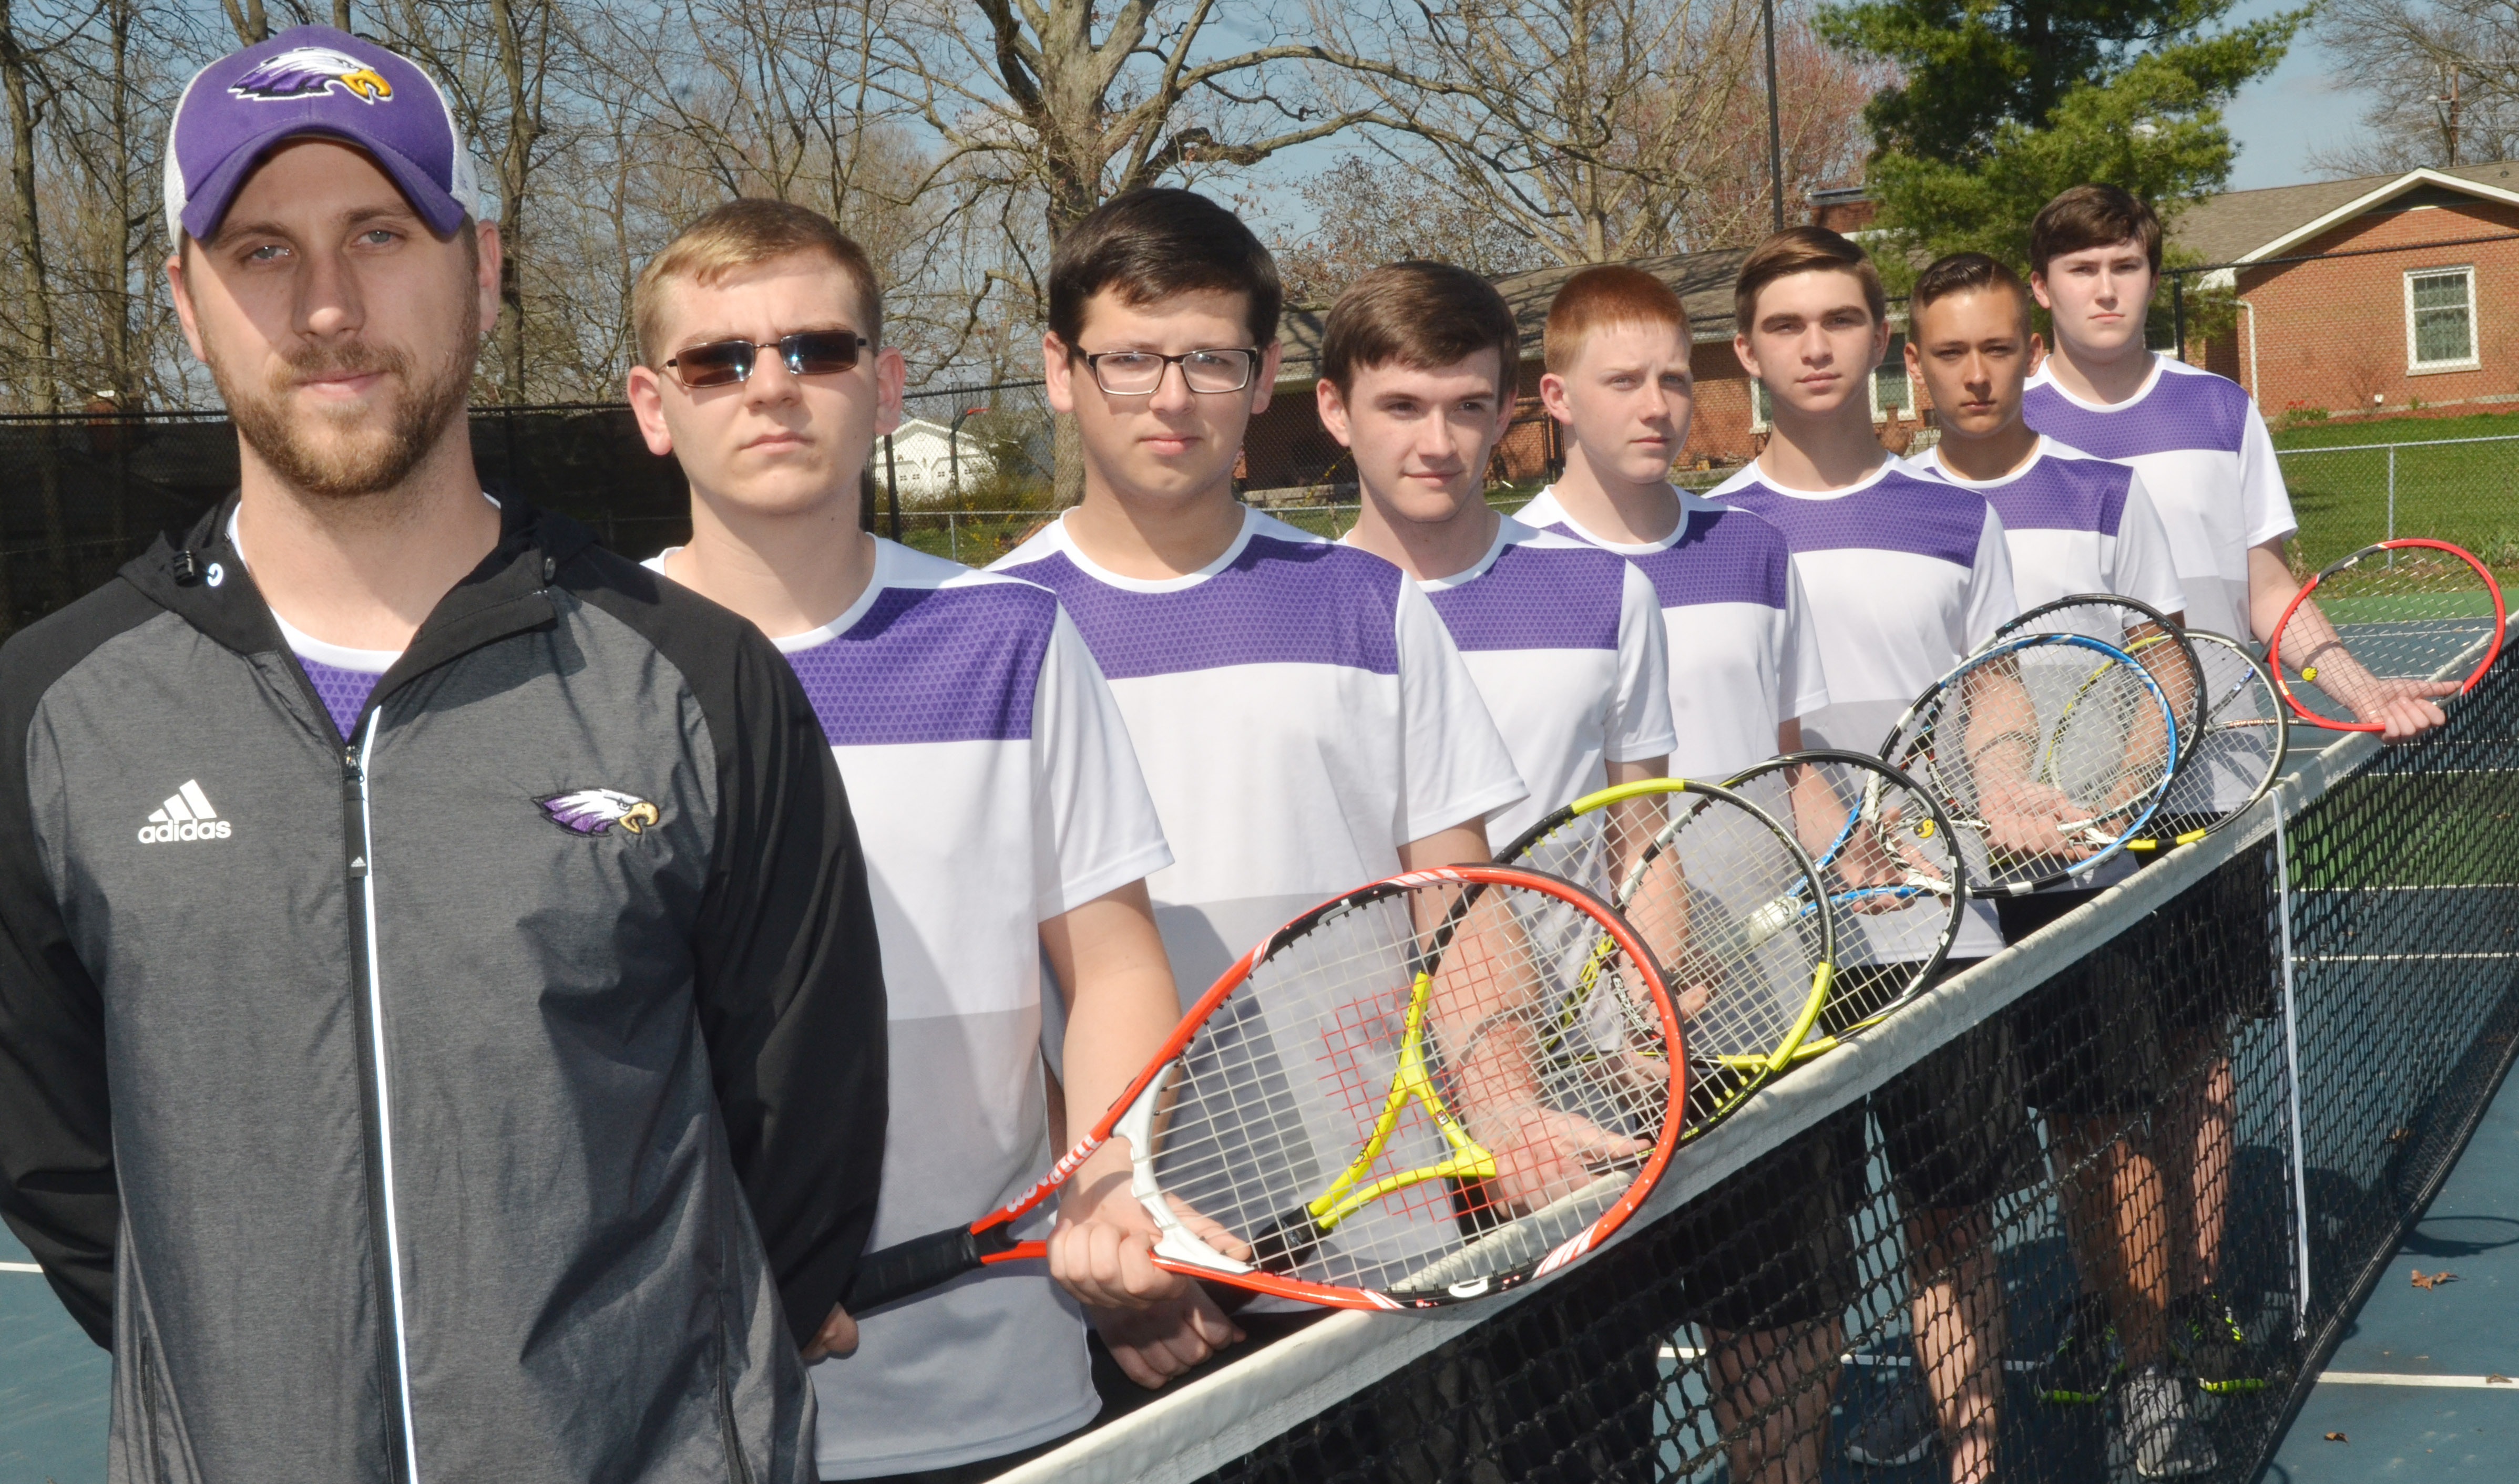 This year's CHS boys' tennis team is, from left, coach Tyler Hardy, sophomore Brandon Greer, Campbellsville Middle School eighth-grader Devan Keith, junior Jackson Hunt, freshman Patrick Walker, juniors Cass Kidwell and Cody Davis and senior Zack Settle.